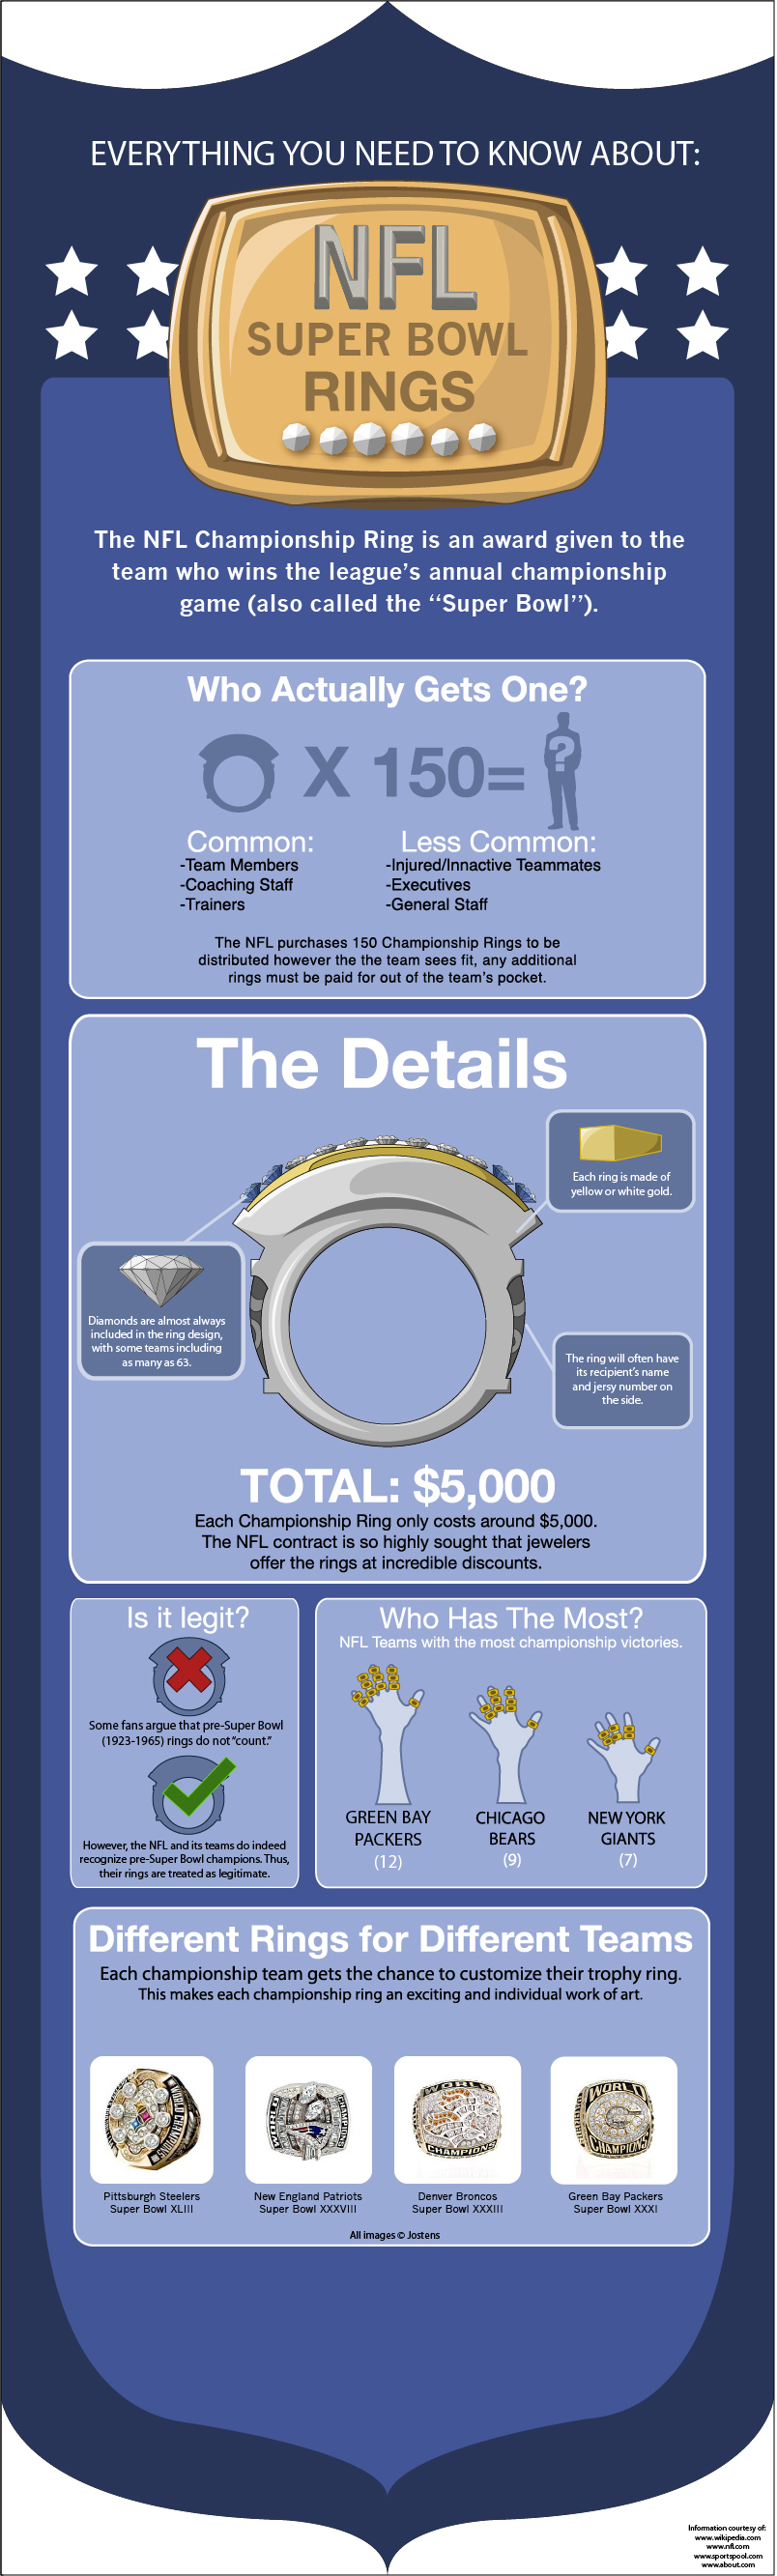 NFL Super Bowl Rings: A Complete Guide